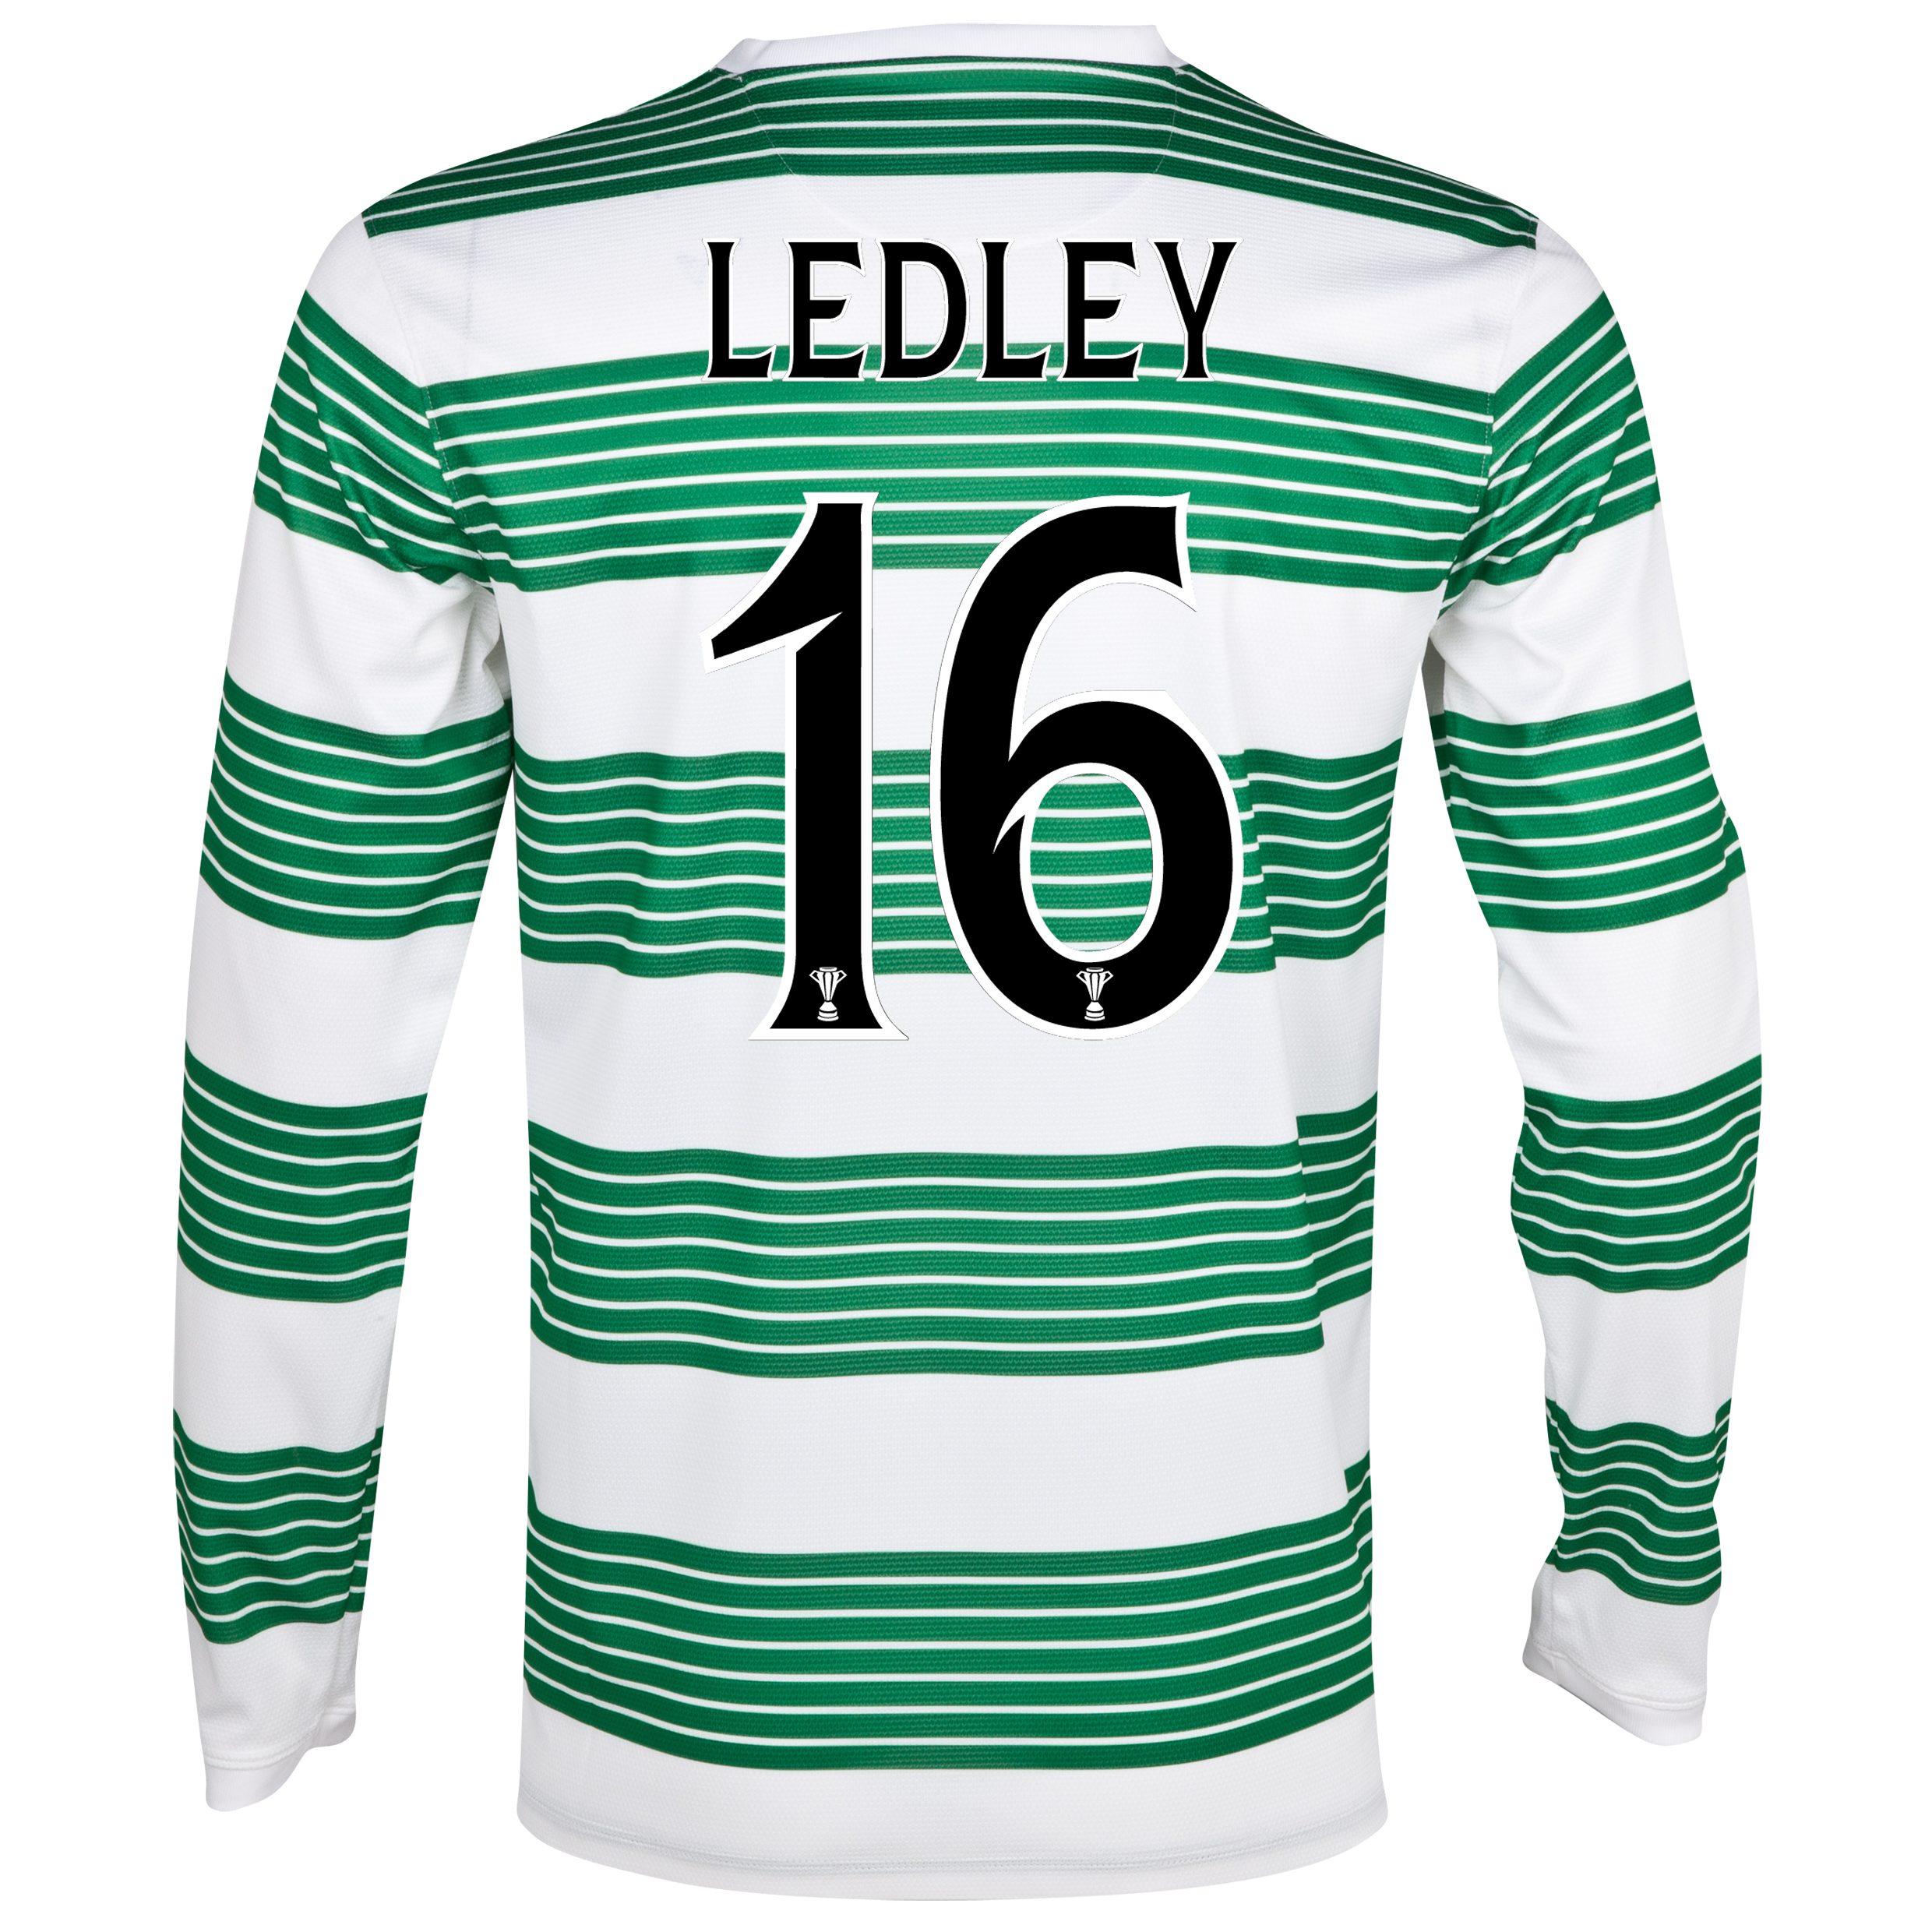 Celtic Home Shirt 2013/14 - L/S- Unsponsored with Ledley 16 printing